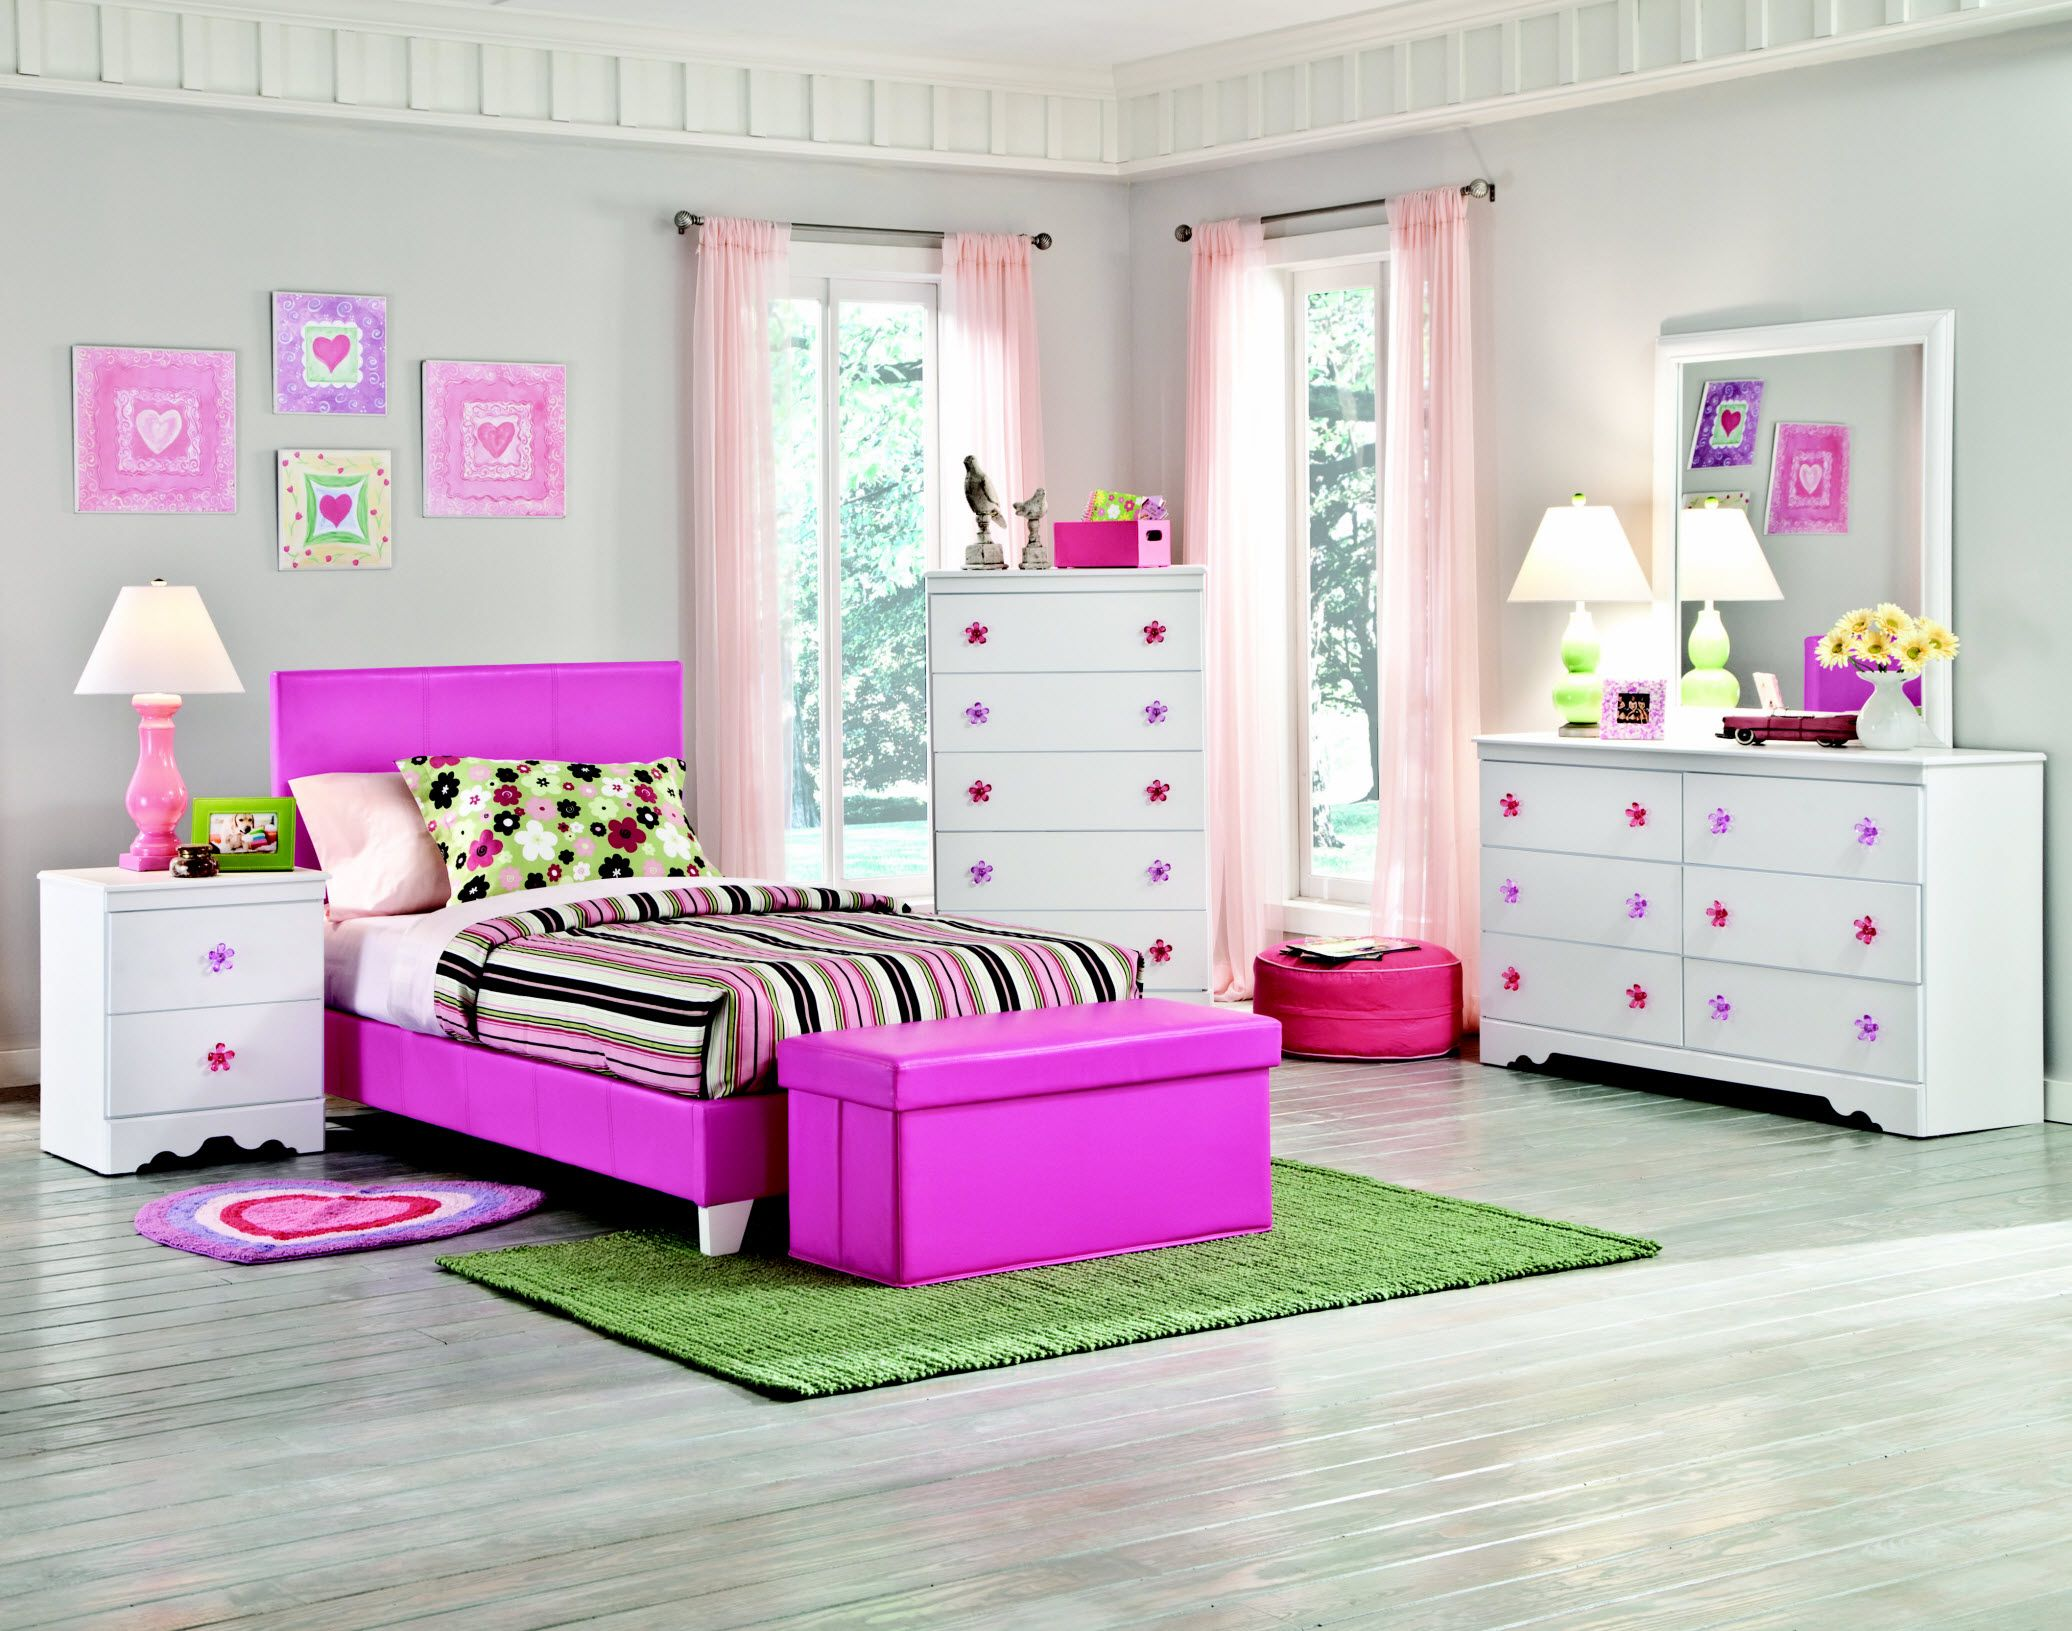 Bedroom sets for girls pink - Design Ideas For Modern Gray Girls Bedroom With Cute Purple Wood Bed Frame That Have Line